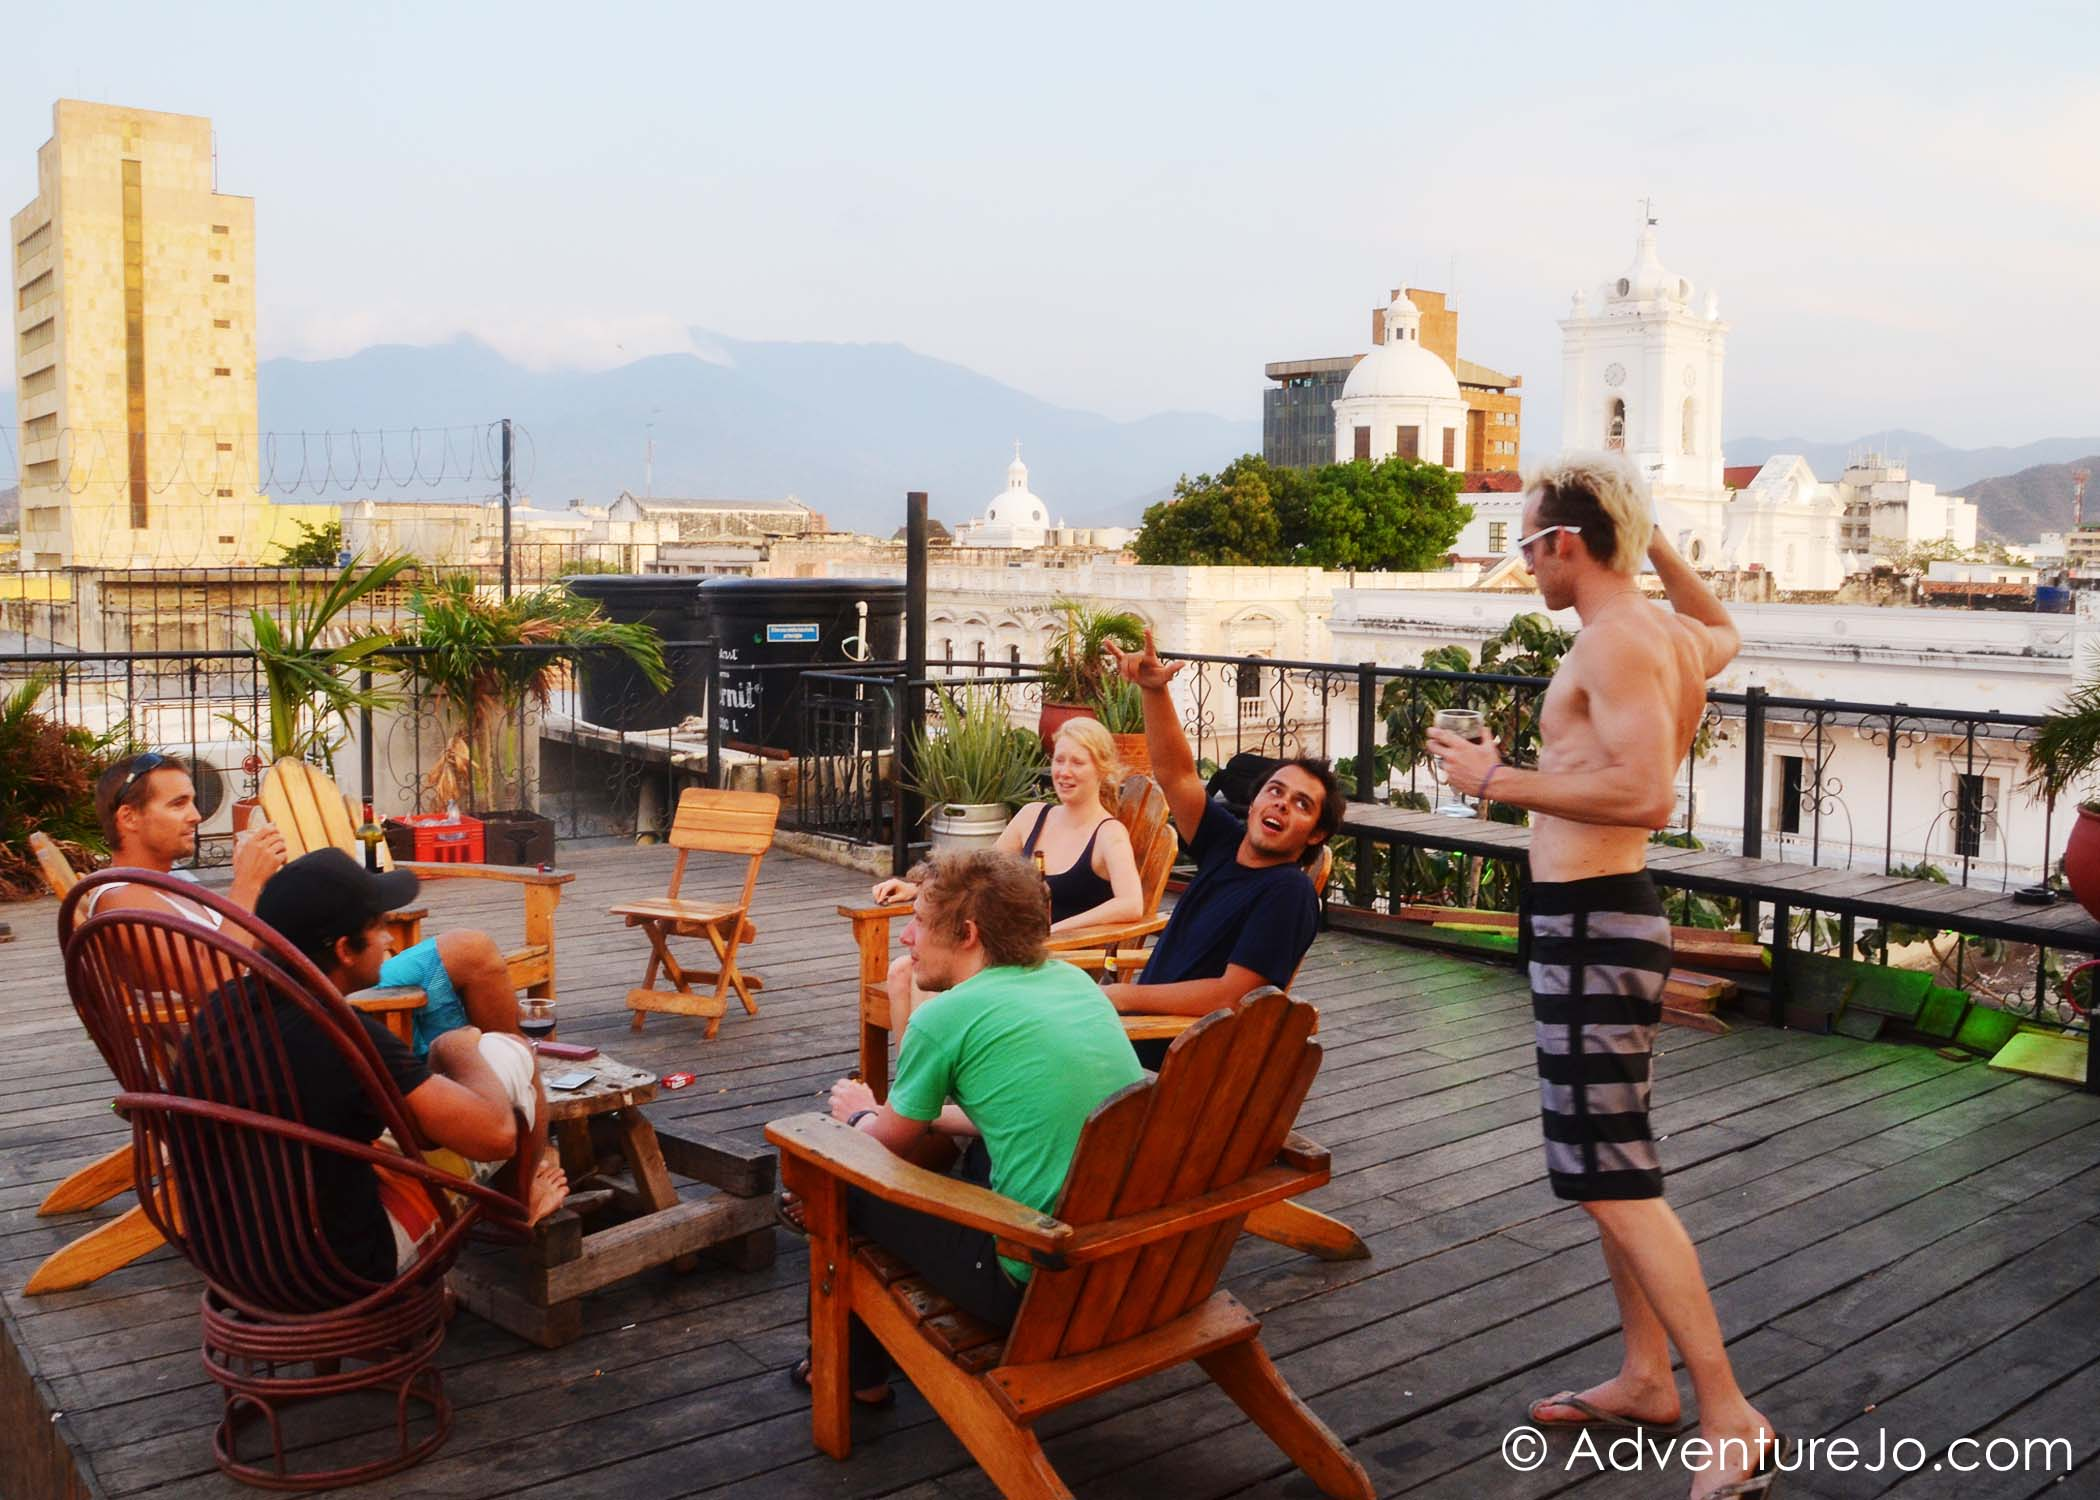 Staying at La Brisa Loca Hostel in Santa Marta, Colombia